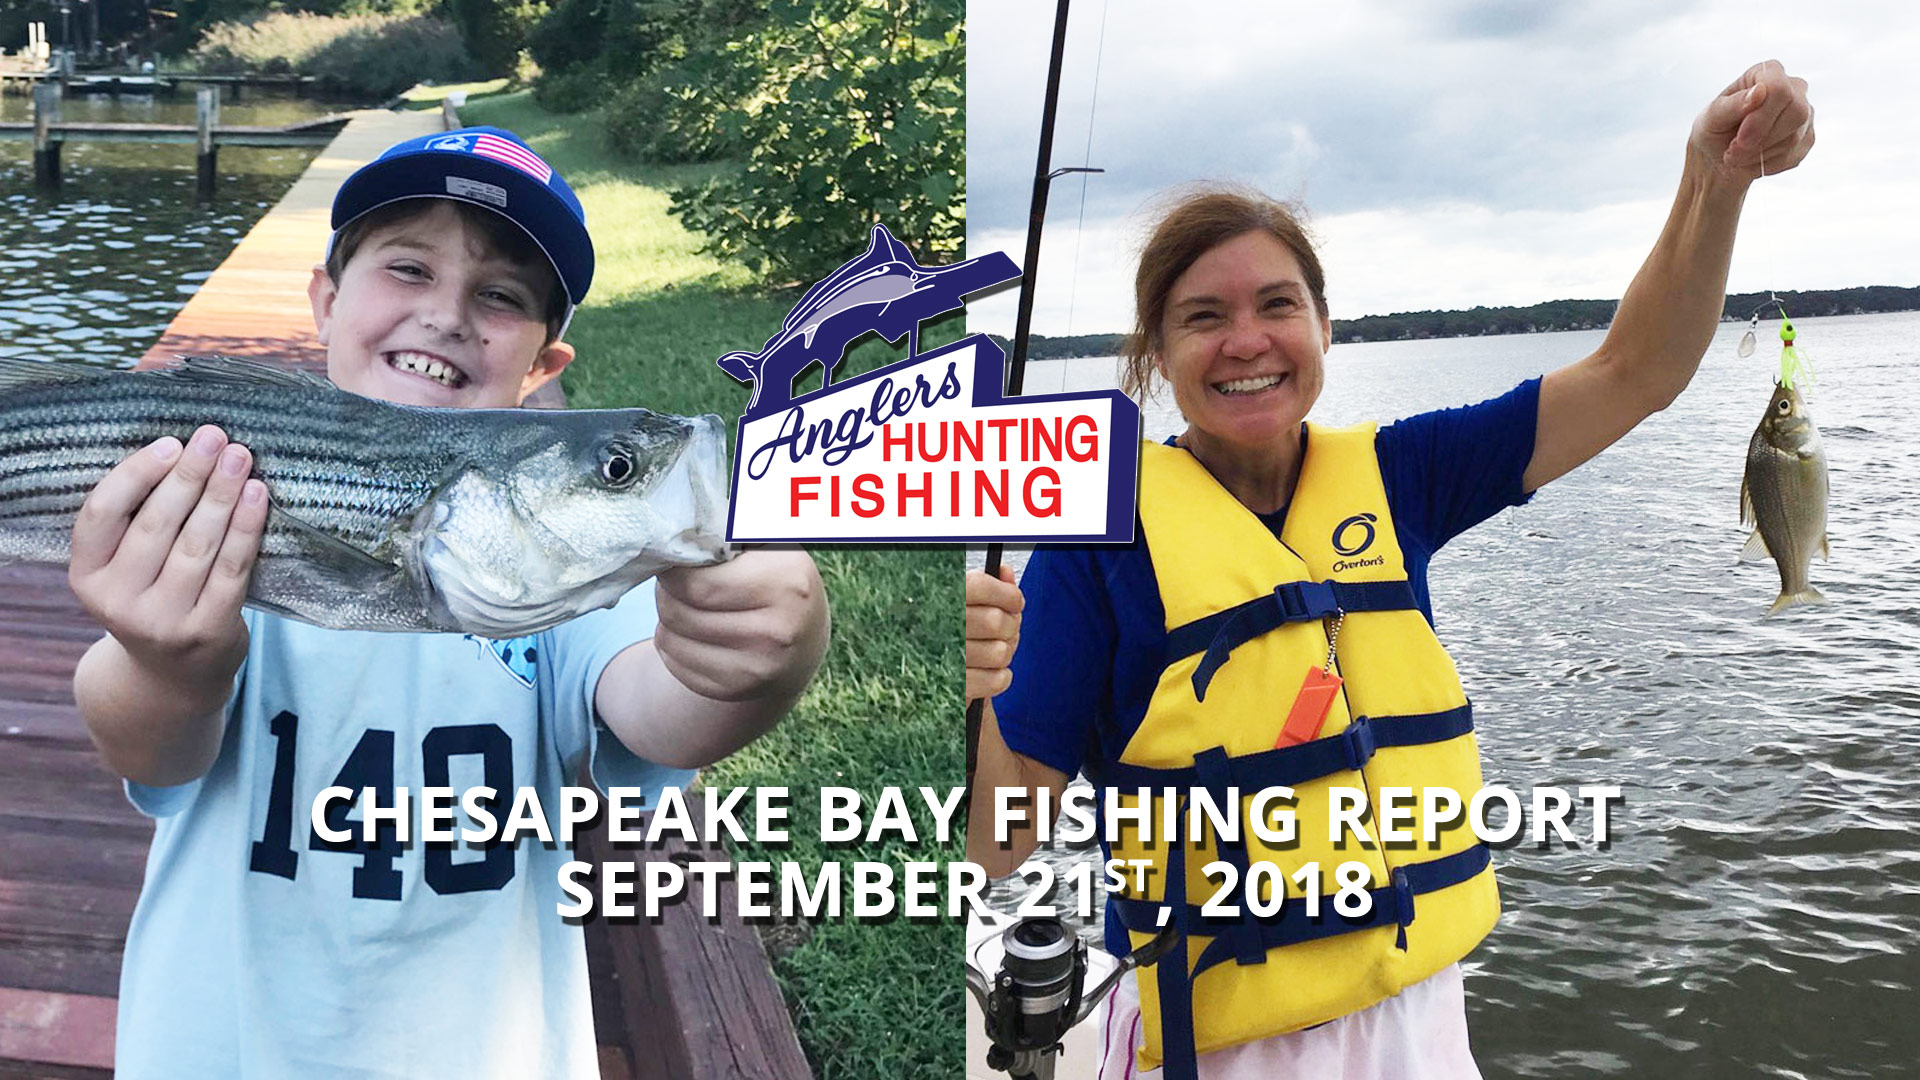 Chesapeake Bay Fishing Report - September 21st, 2018